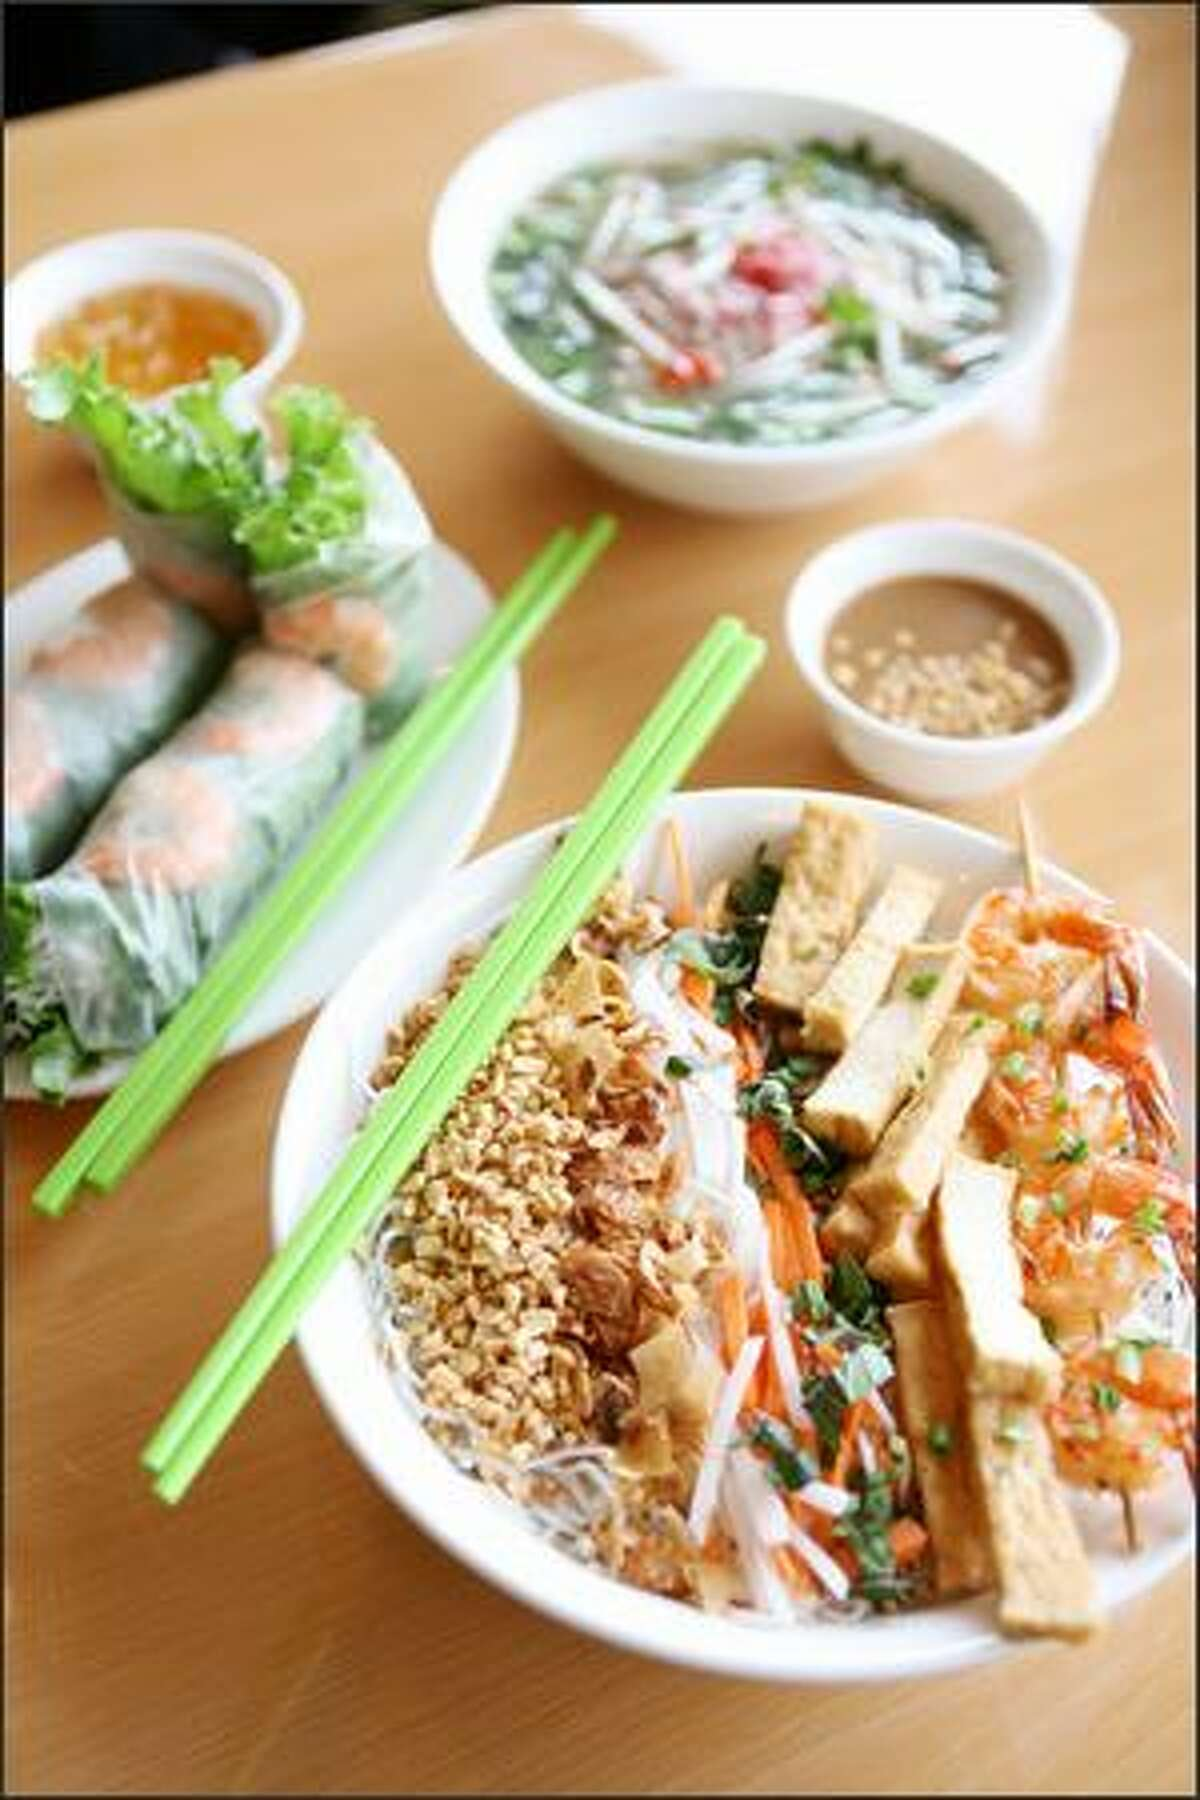 The menu at Time 4 Pho in Magnolia includes, clockwise from lower right: bun (noodle salad) with tofu and shrimp skewer, spring rolls and pho with steak.